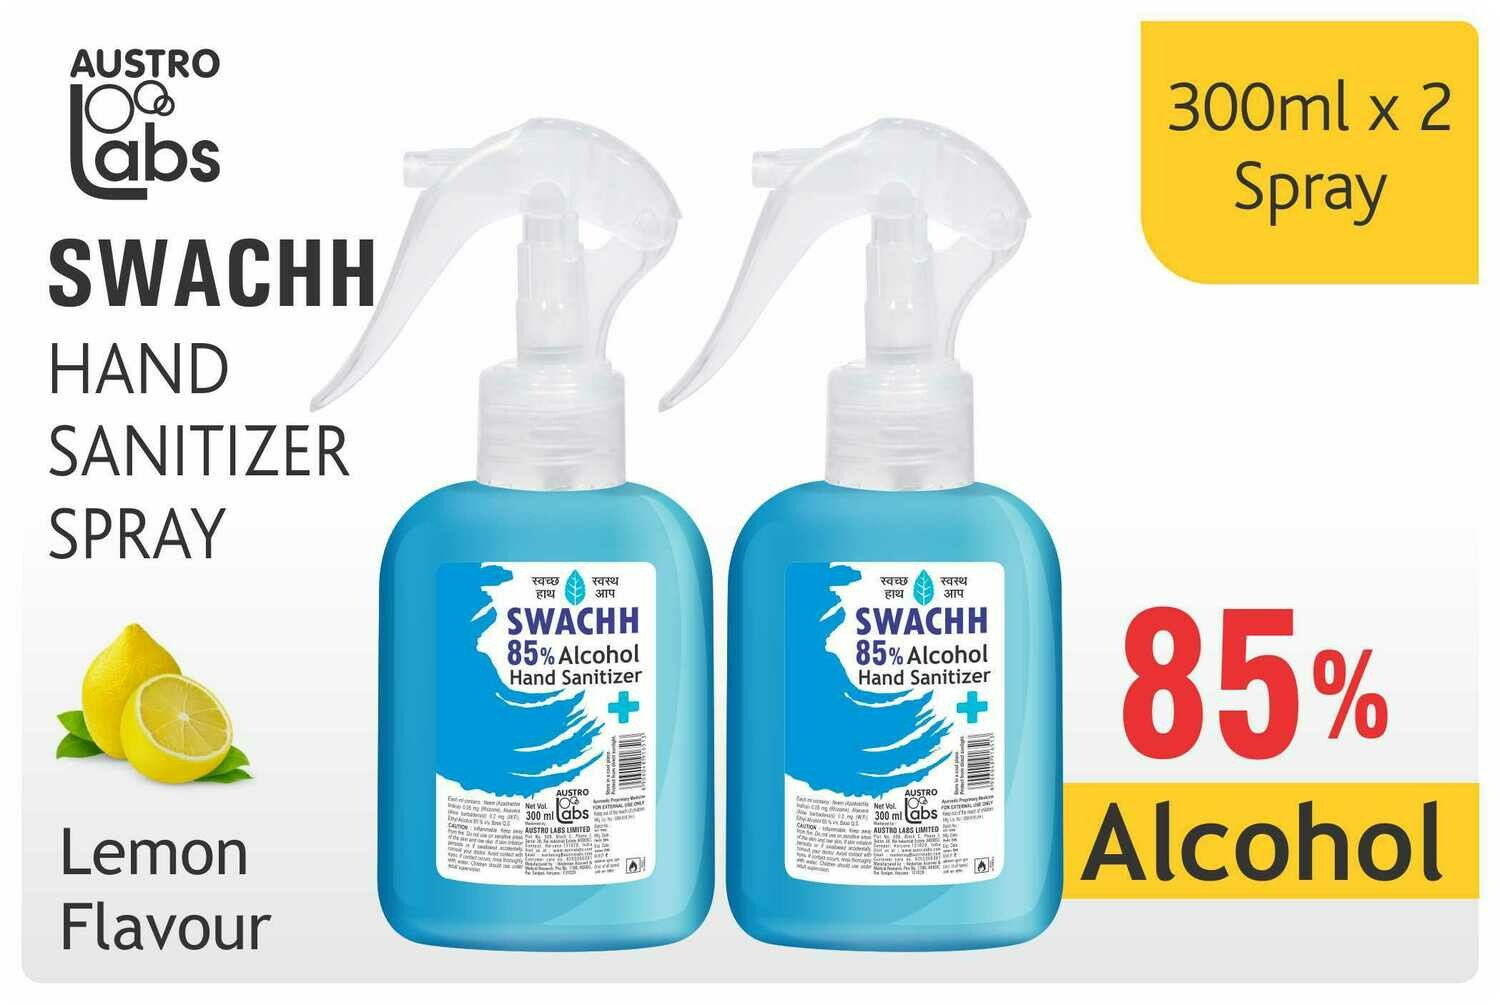 Austro Labs Swachh Hand Sanitizer (Spray) - Pack of 2